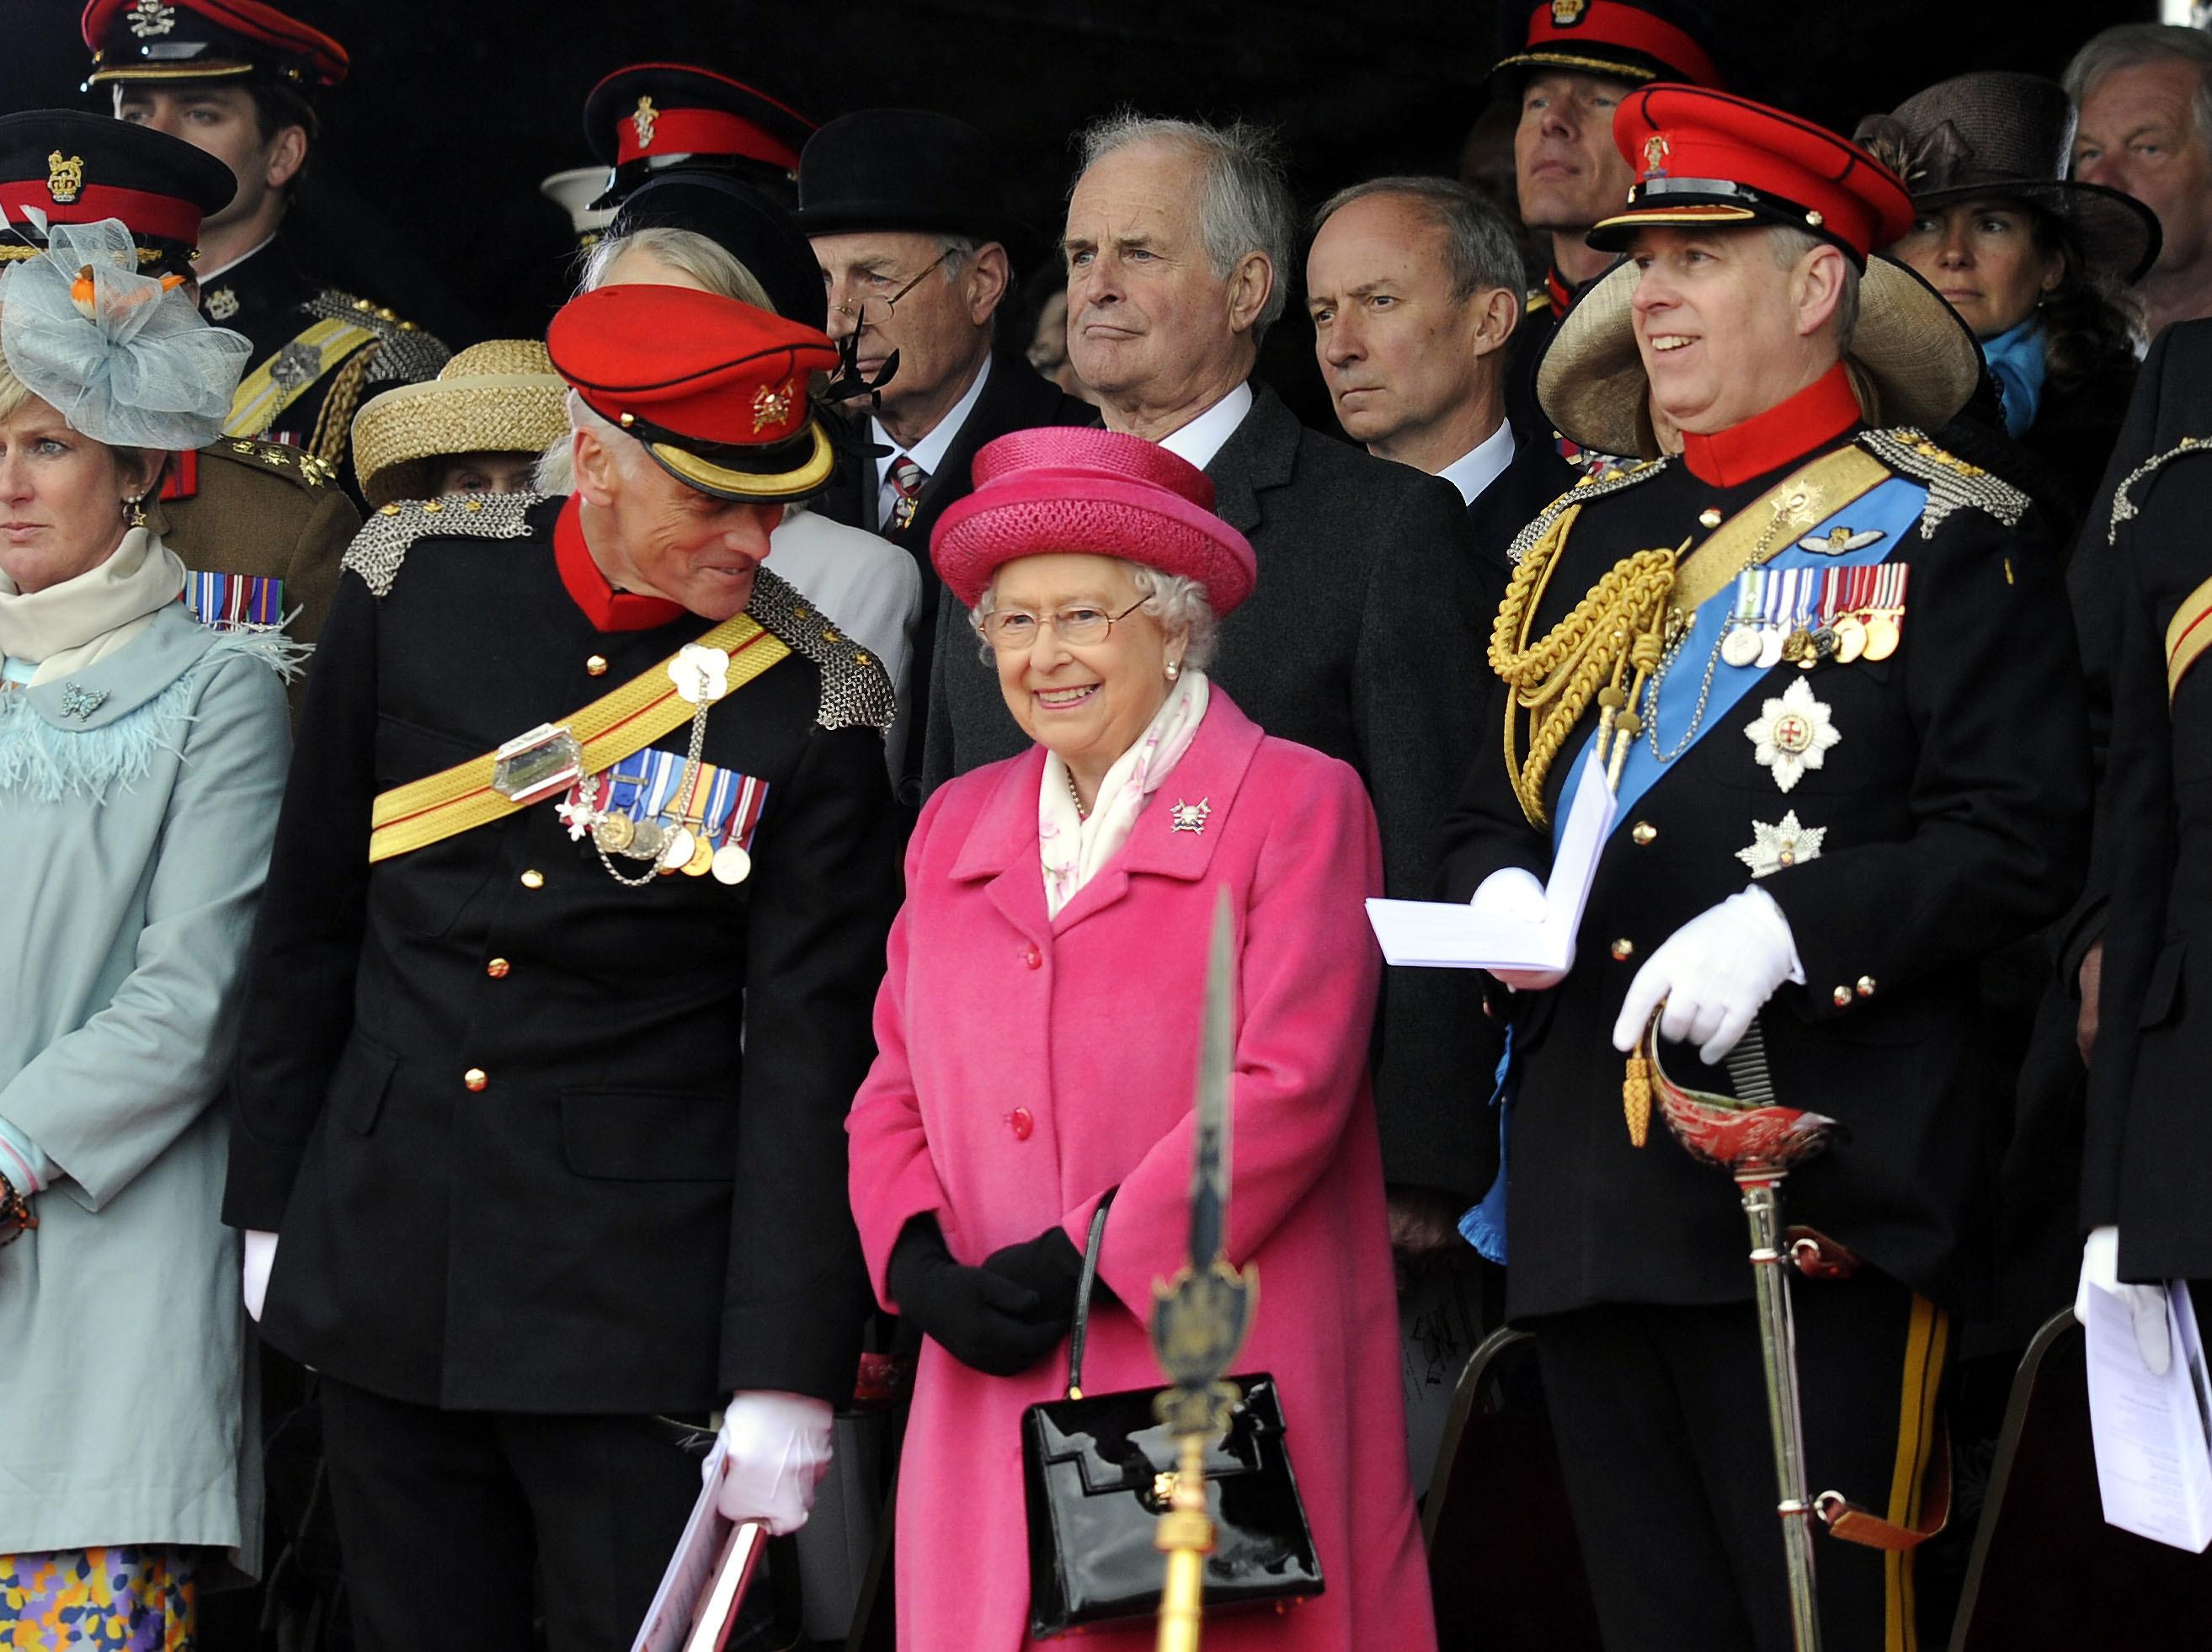 The Queen and The Duke of York attend The Royal Lancers amalgamation ceremony in 2015